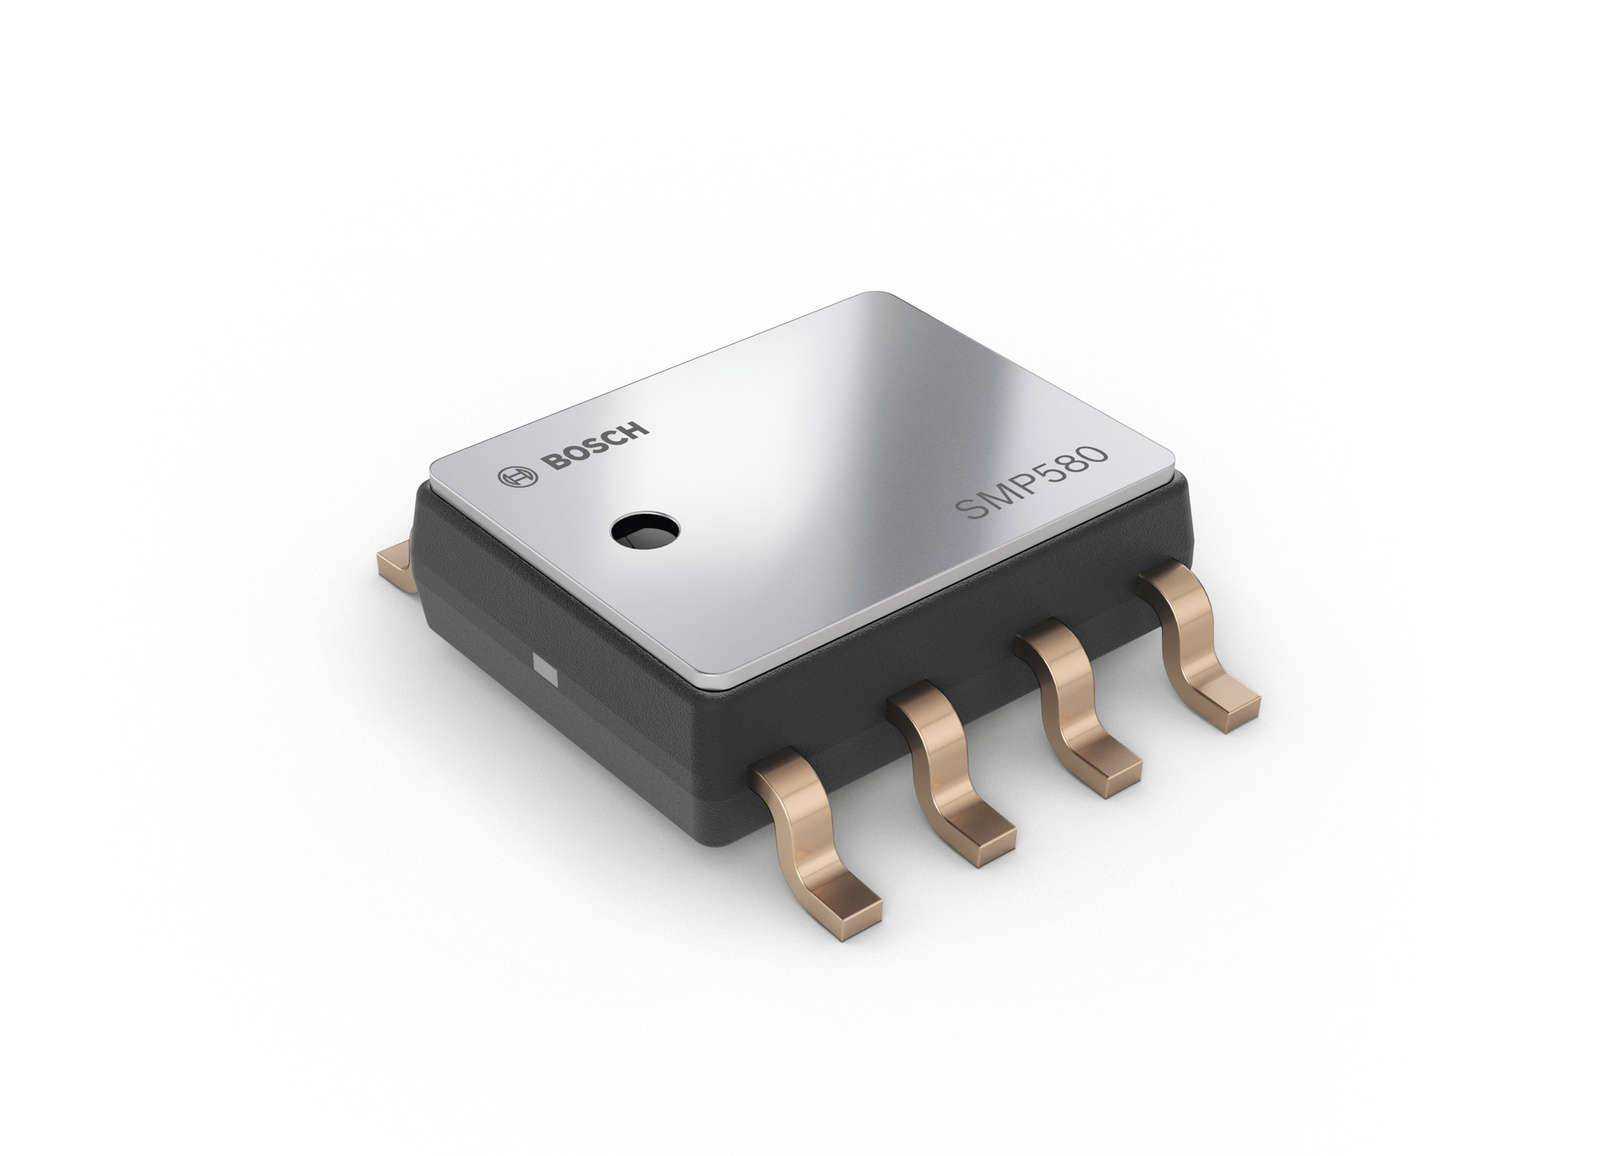 The new Bosch SMP580 barometric pressure sensor helps engine management systems reduce fuel consumption and emissions